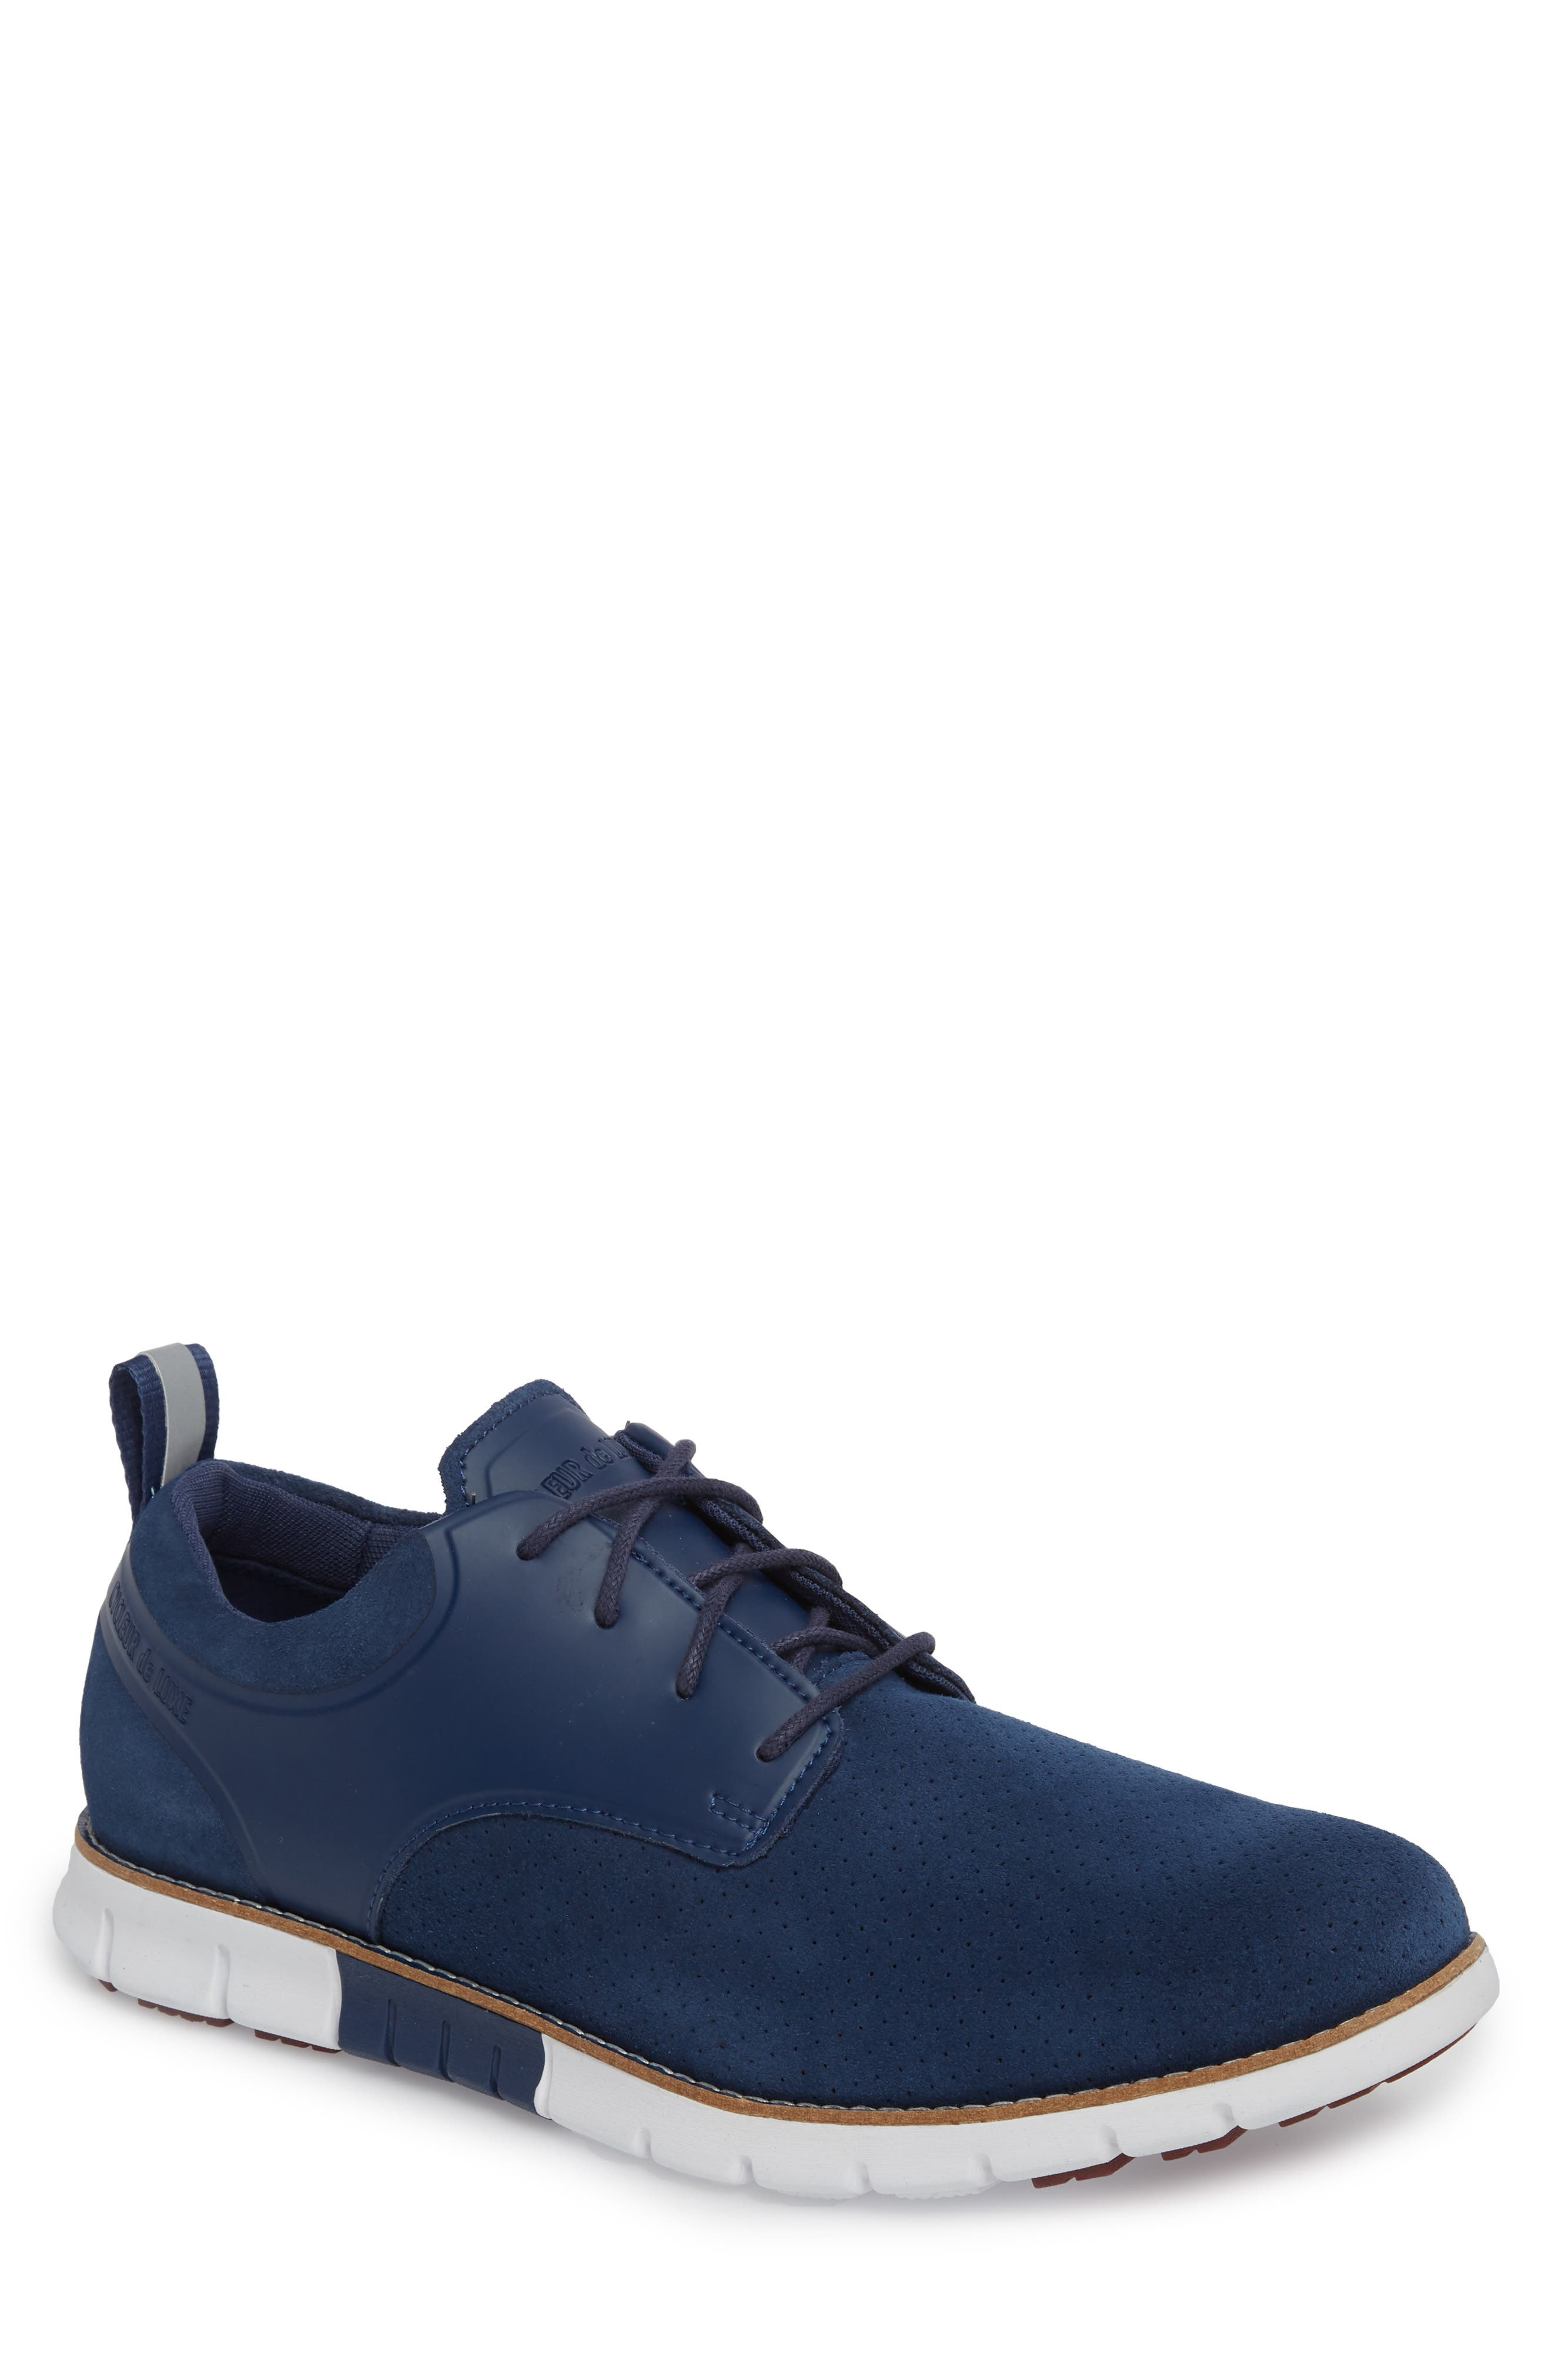 Ridley Perforated Low Top Sneaker,                             Main thumbnail 1, color,                             NAVY LEATHER